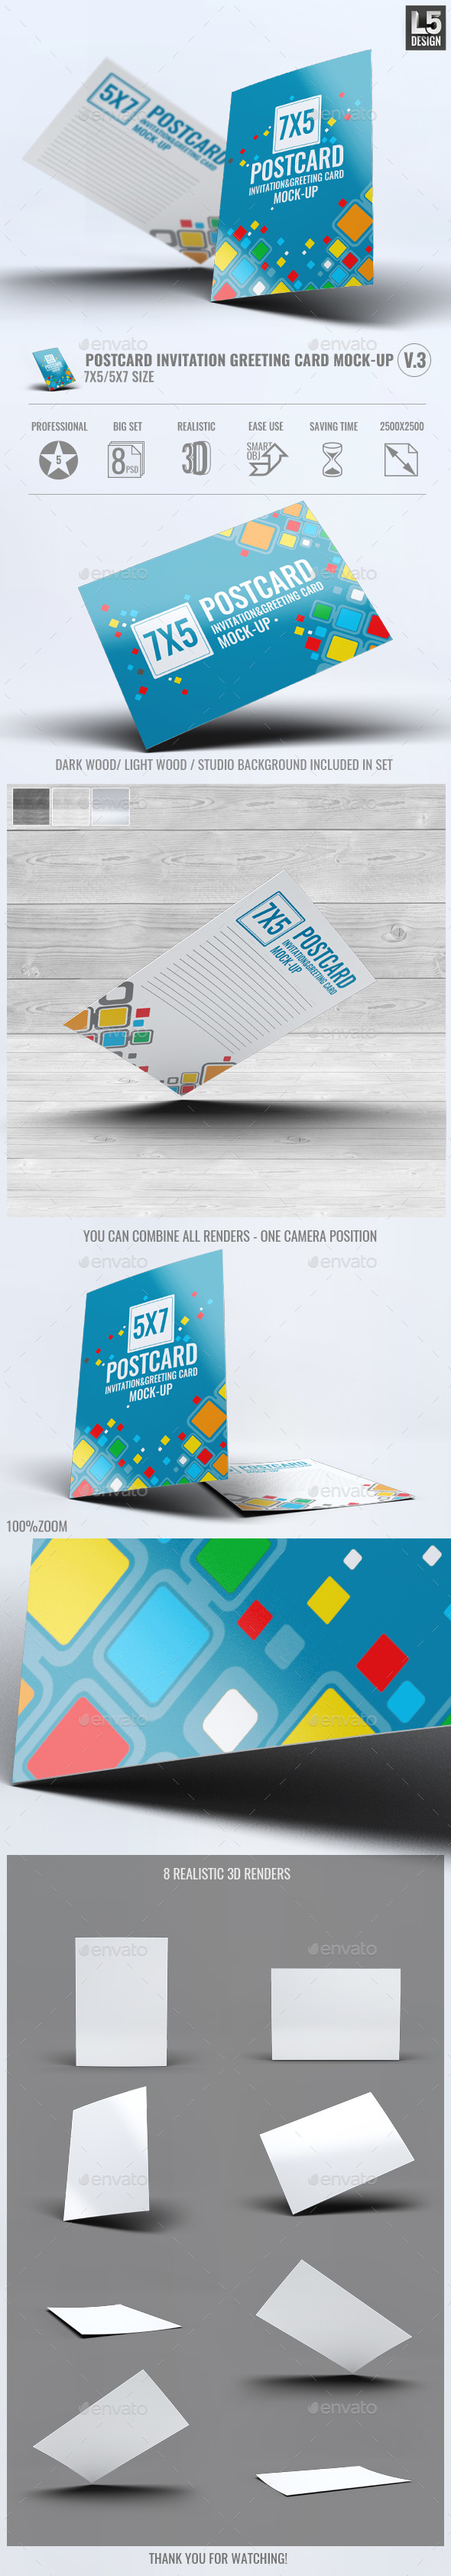 Postcard Invitation Greeting Card Mock-Up V.3 - Miscellaneous Print